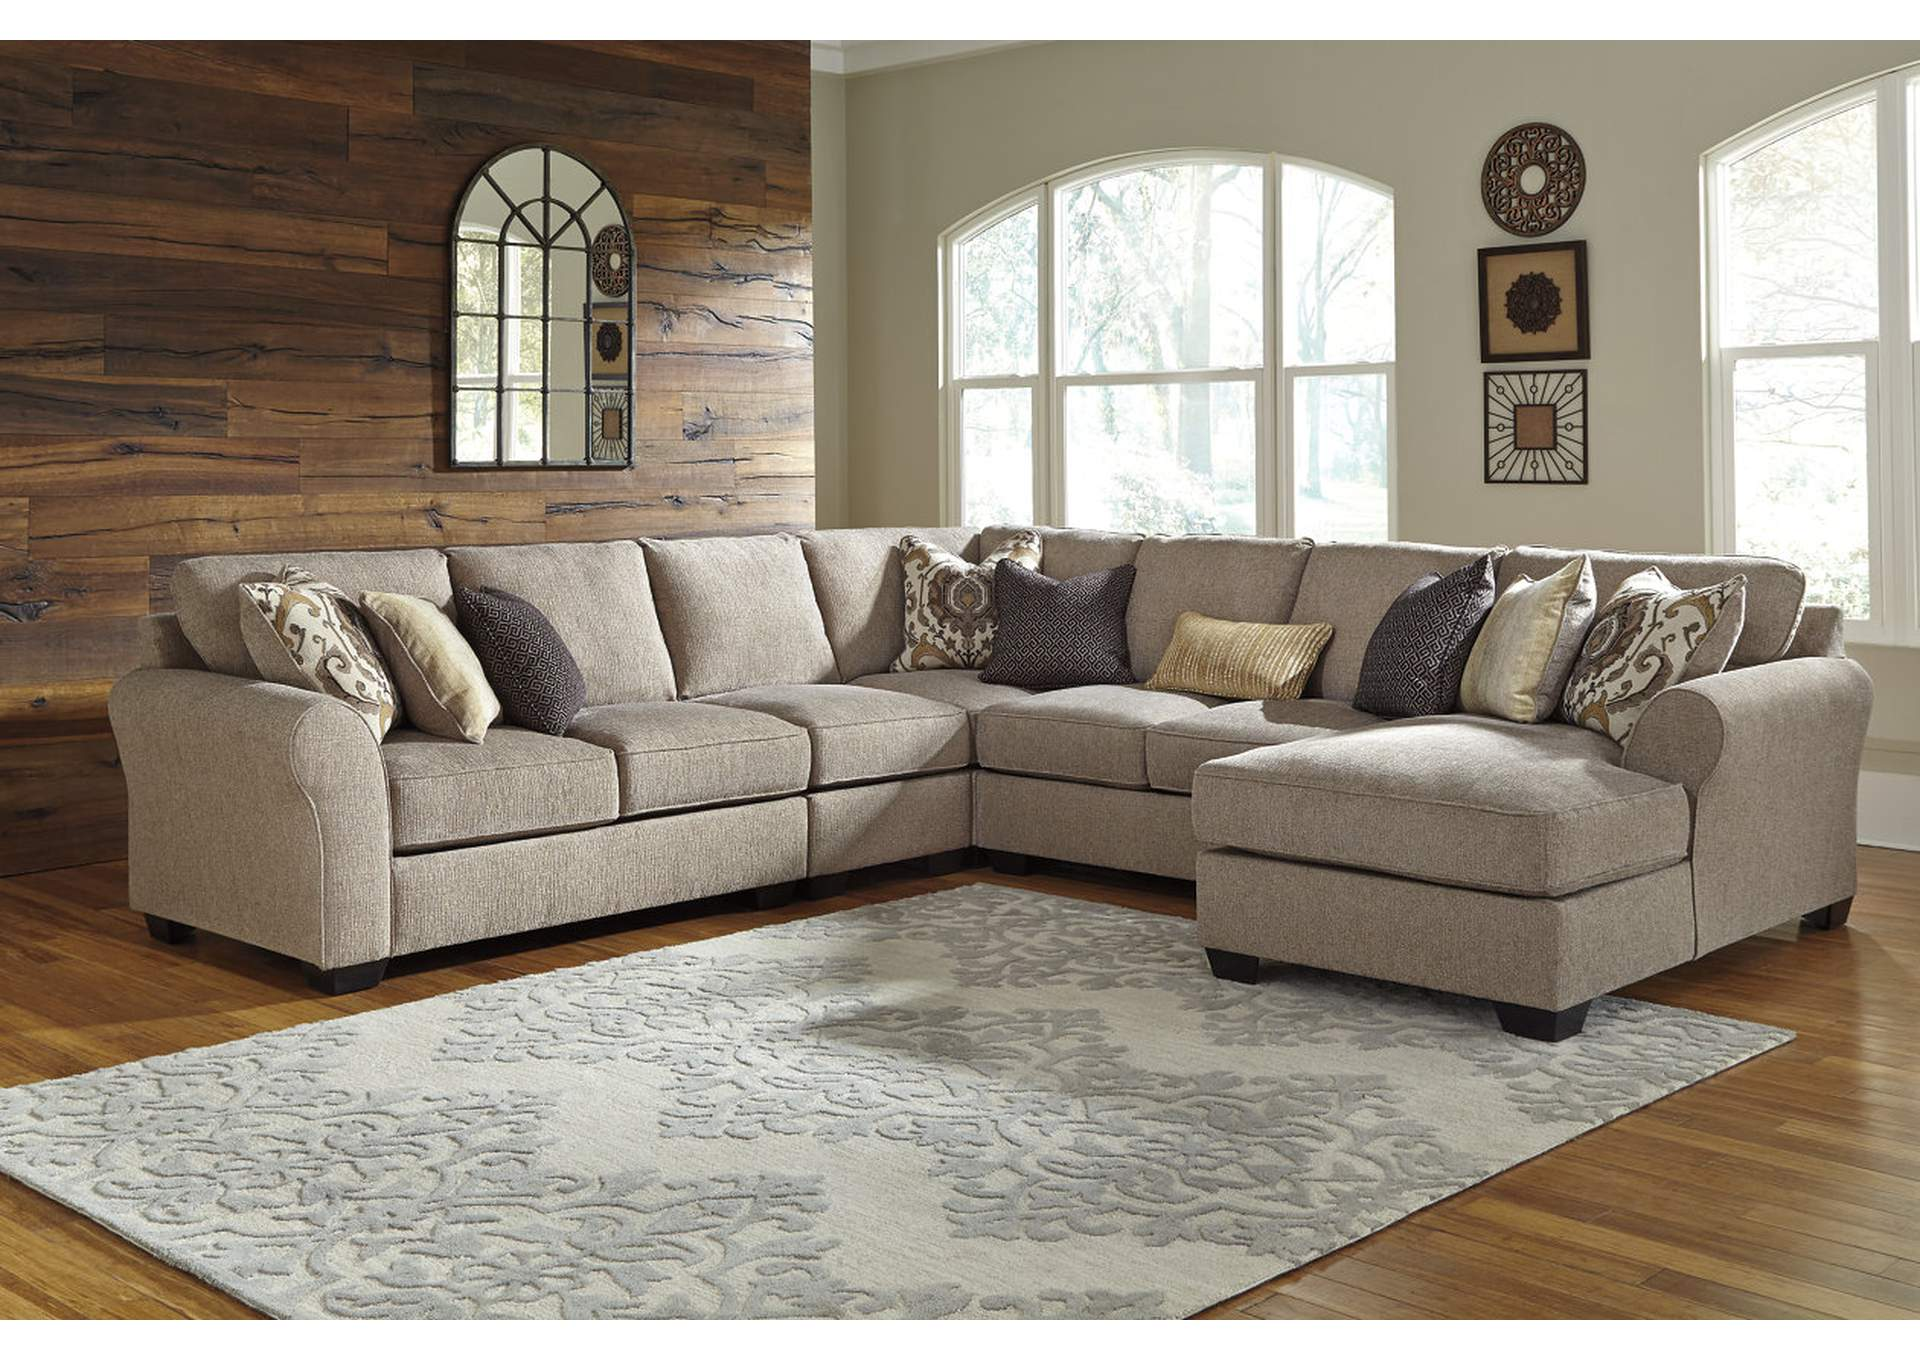 Pantomine Driftwood Extended Sectional w/Right Facing Corner Chaise,Benchcraft